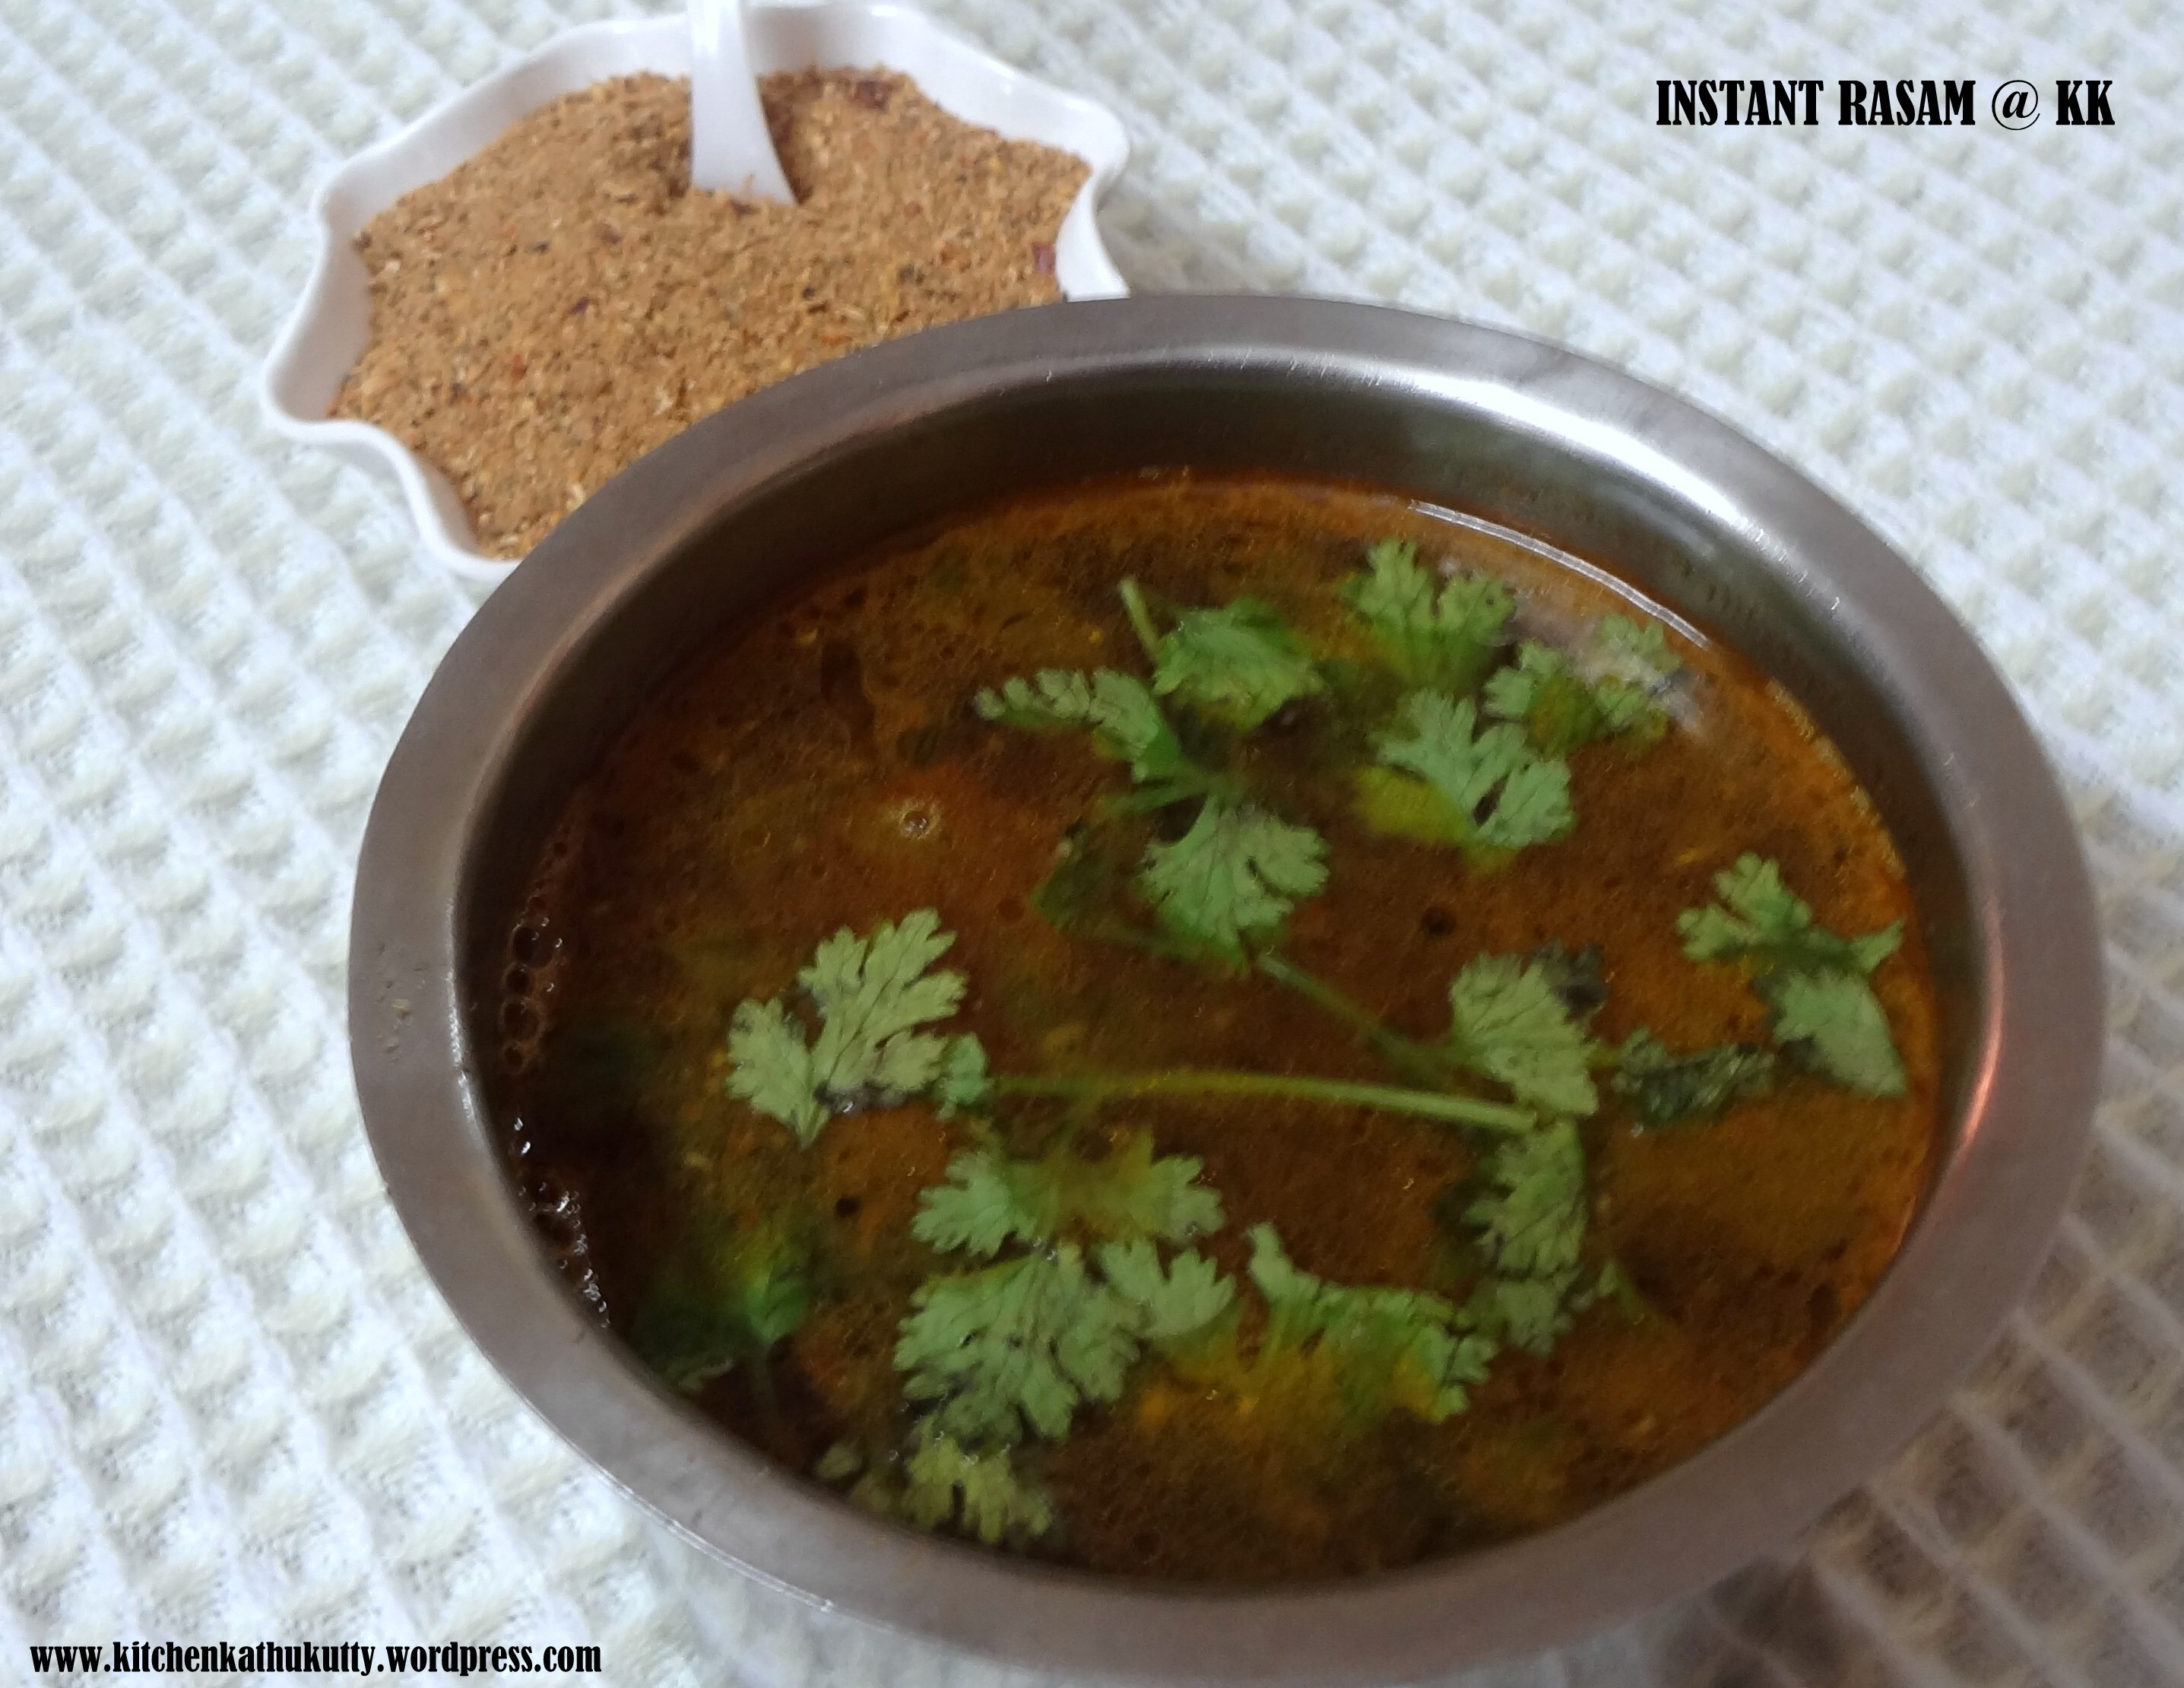 Instant rasam with home made rasam powder